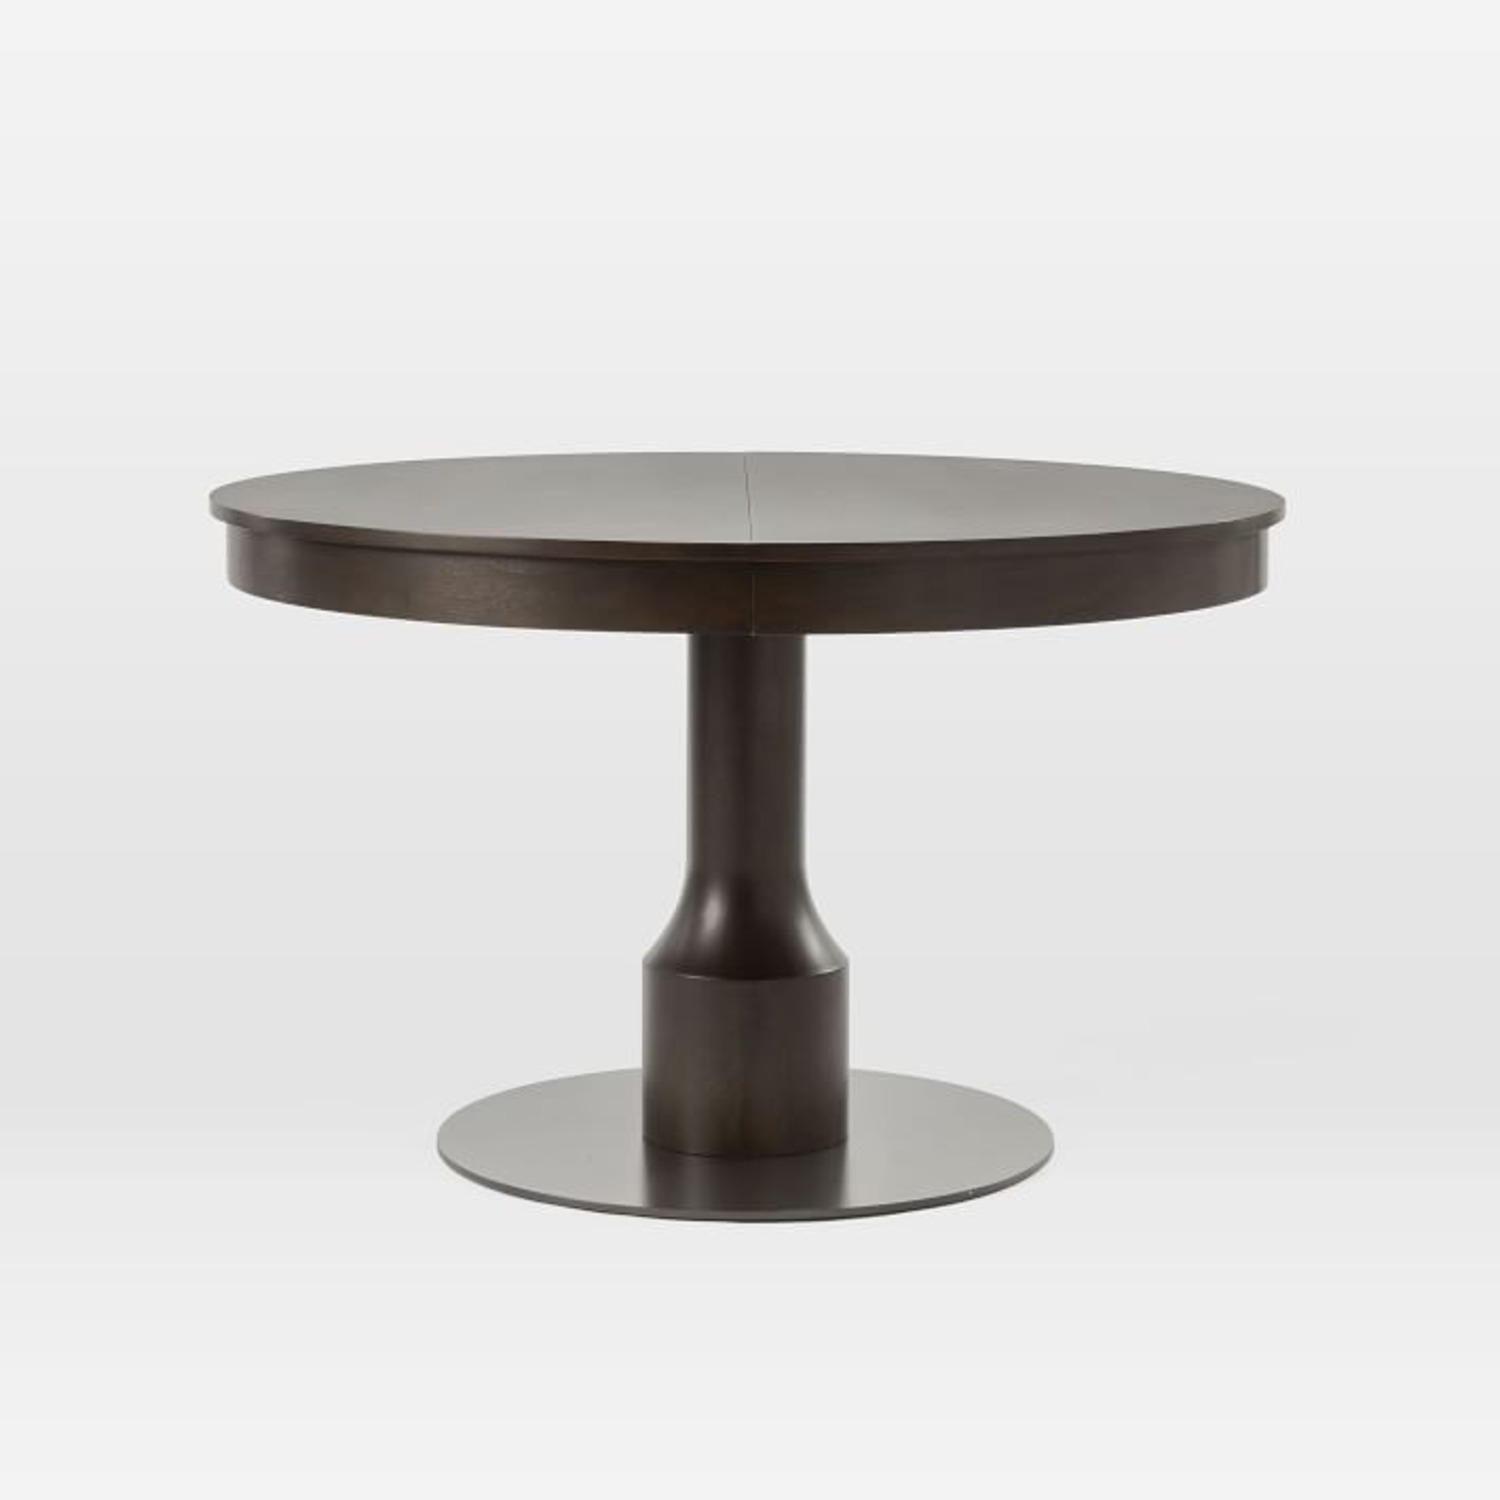 West Elm Turned Pedestal Expandable Dining Table - image-1